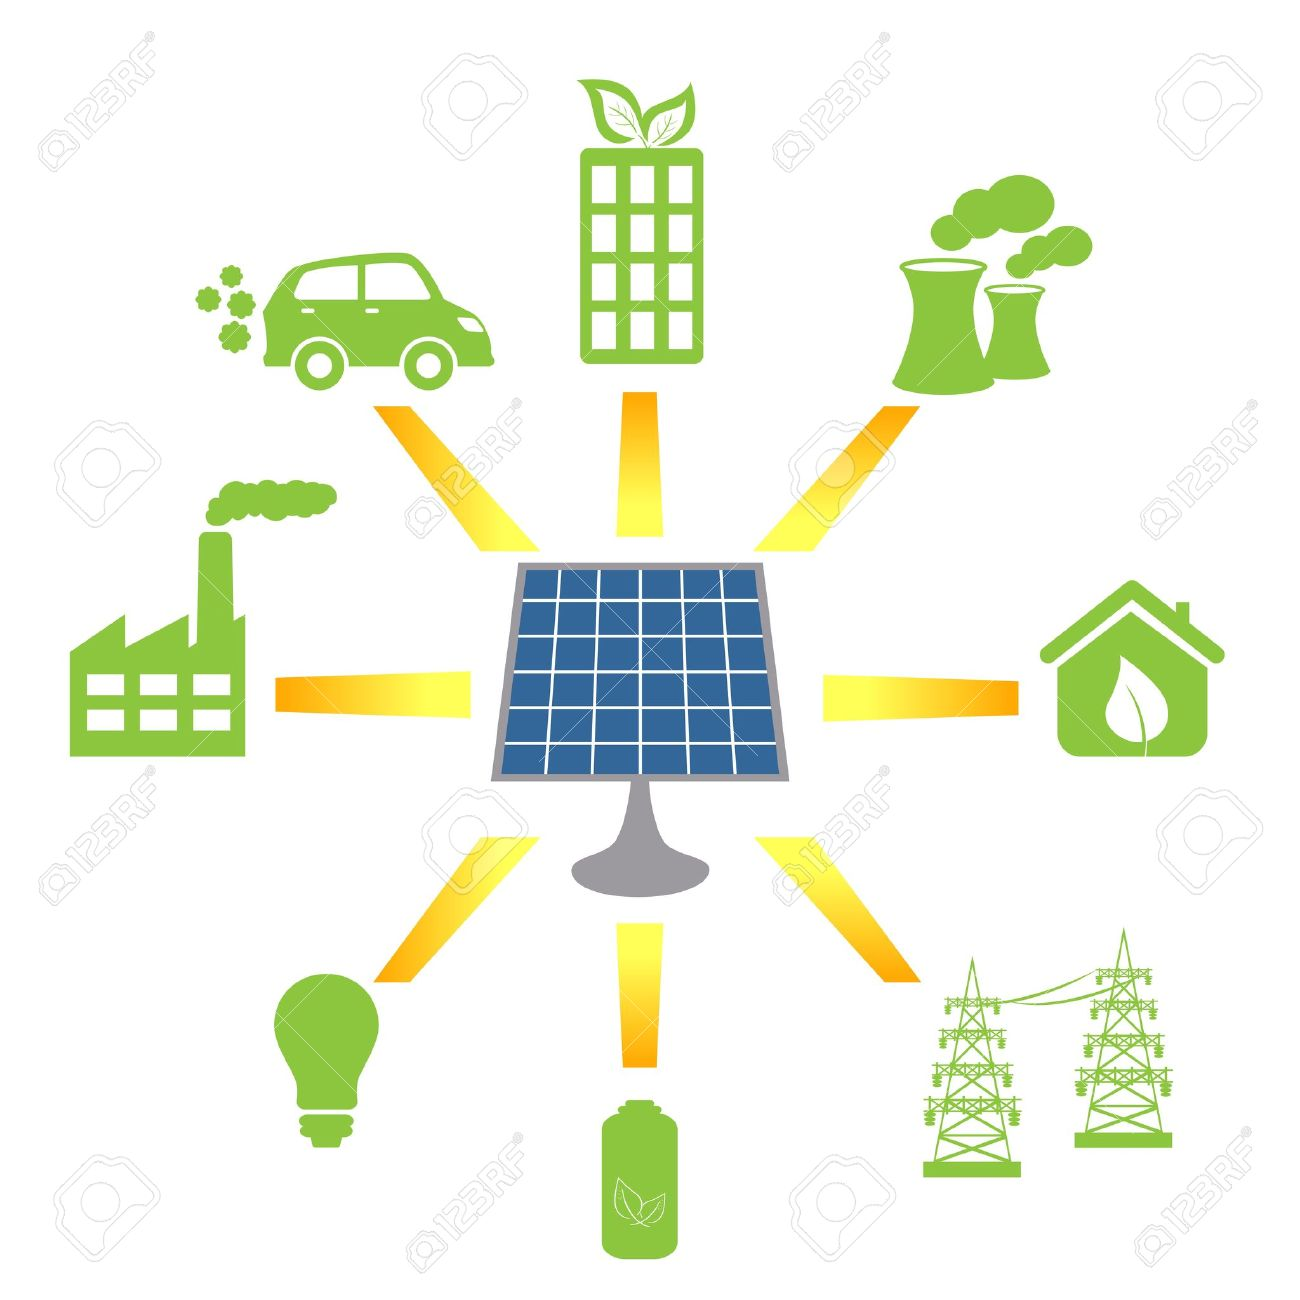 Solar Panel Generating Clean Alternative Energy And Fuel Royalty.